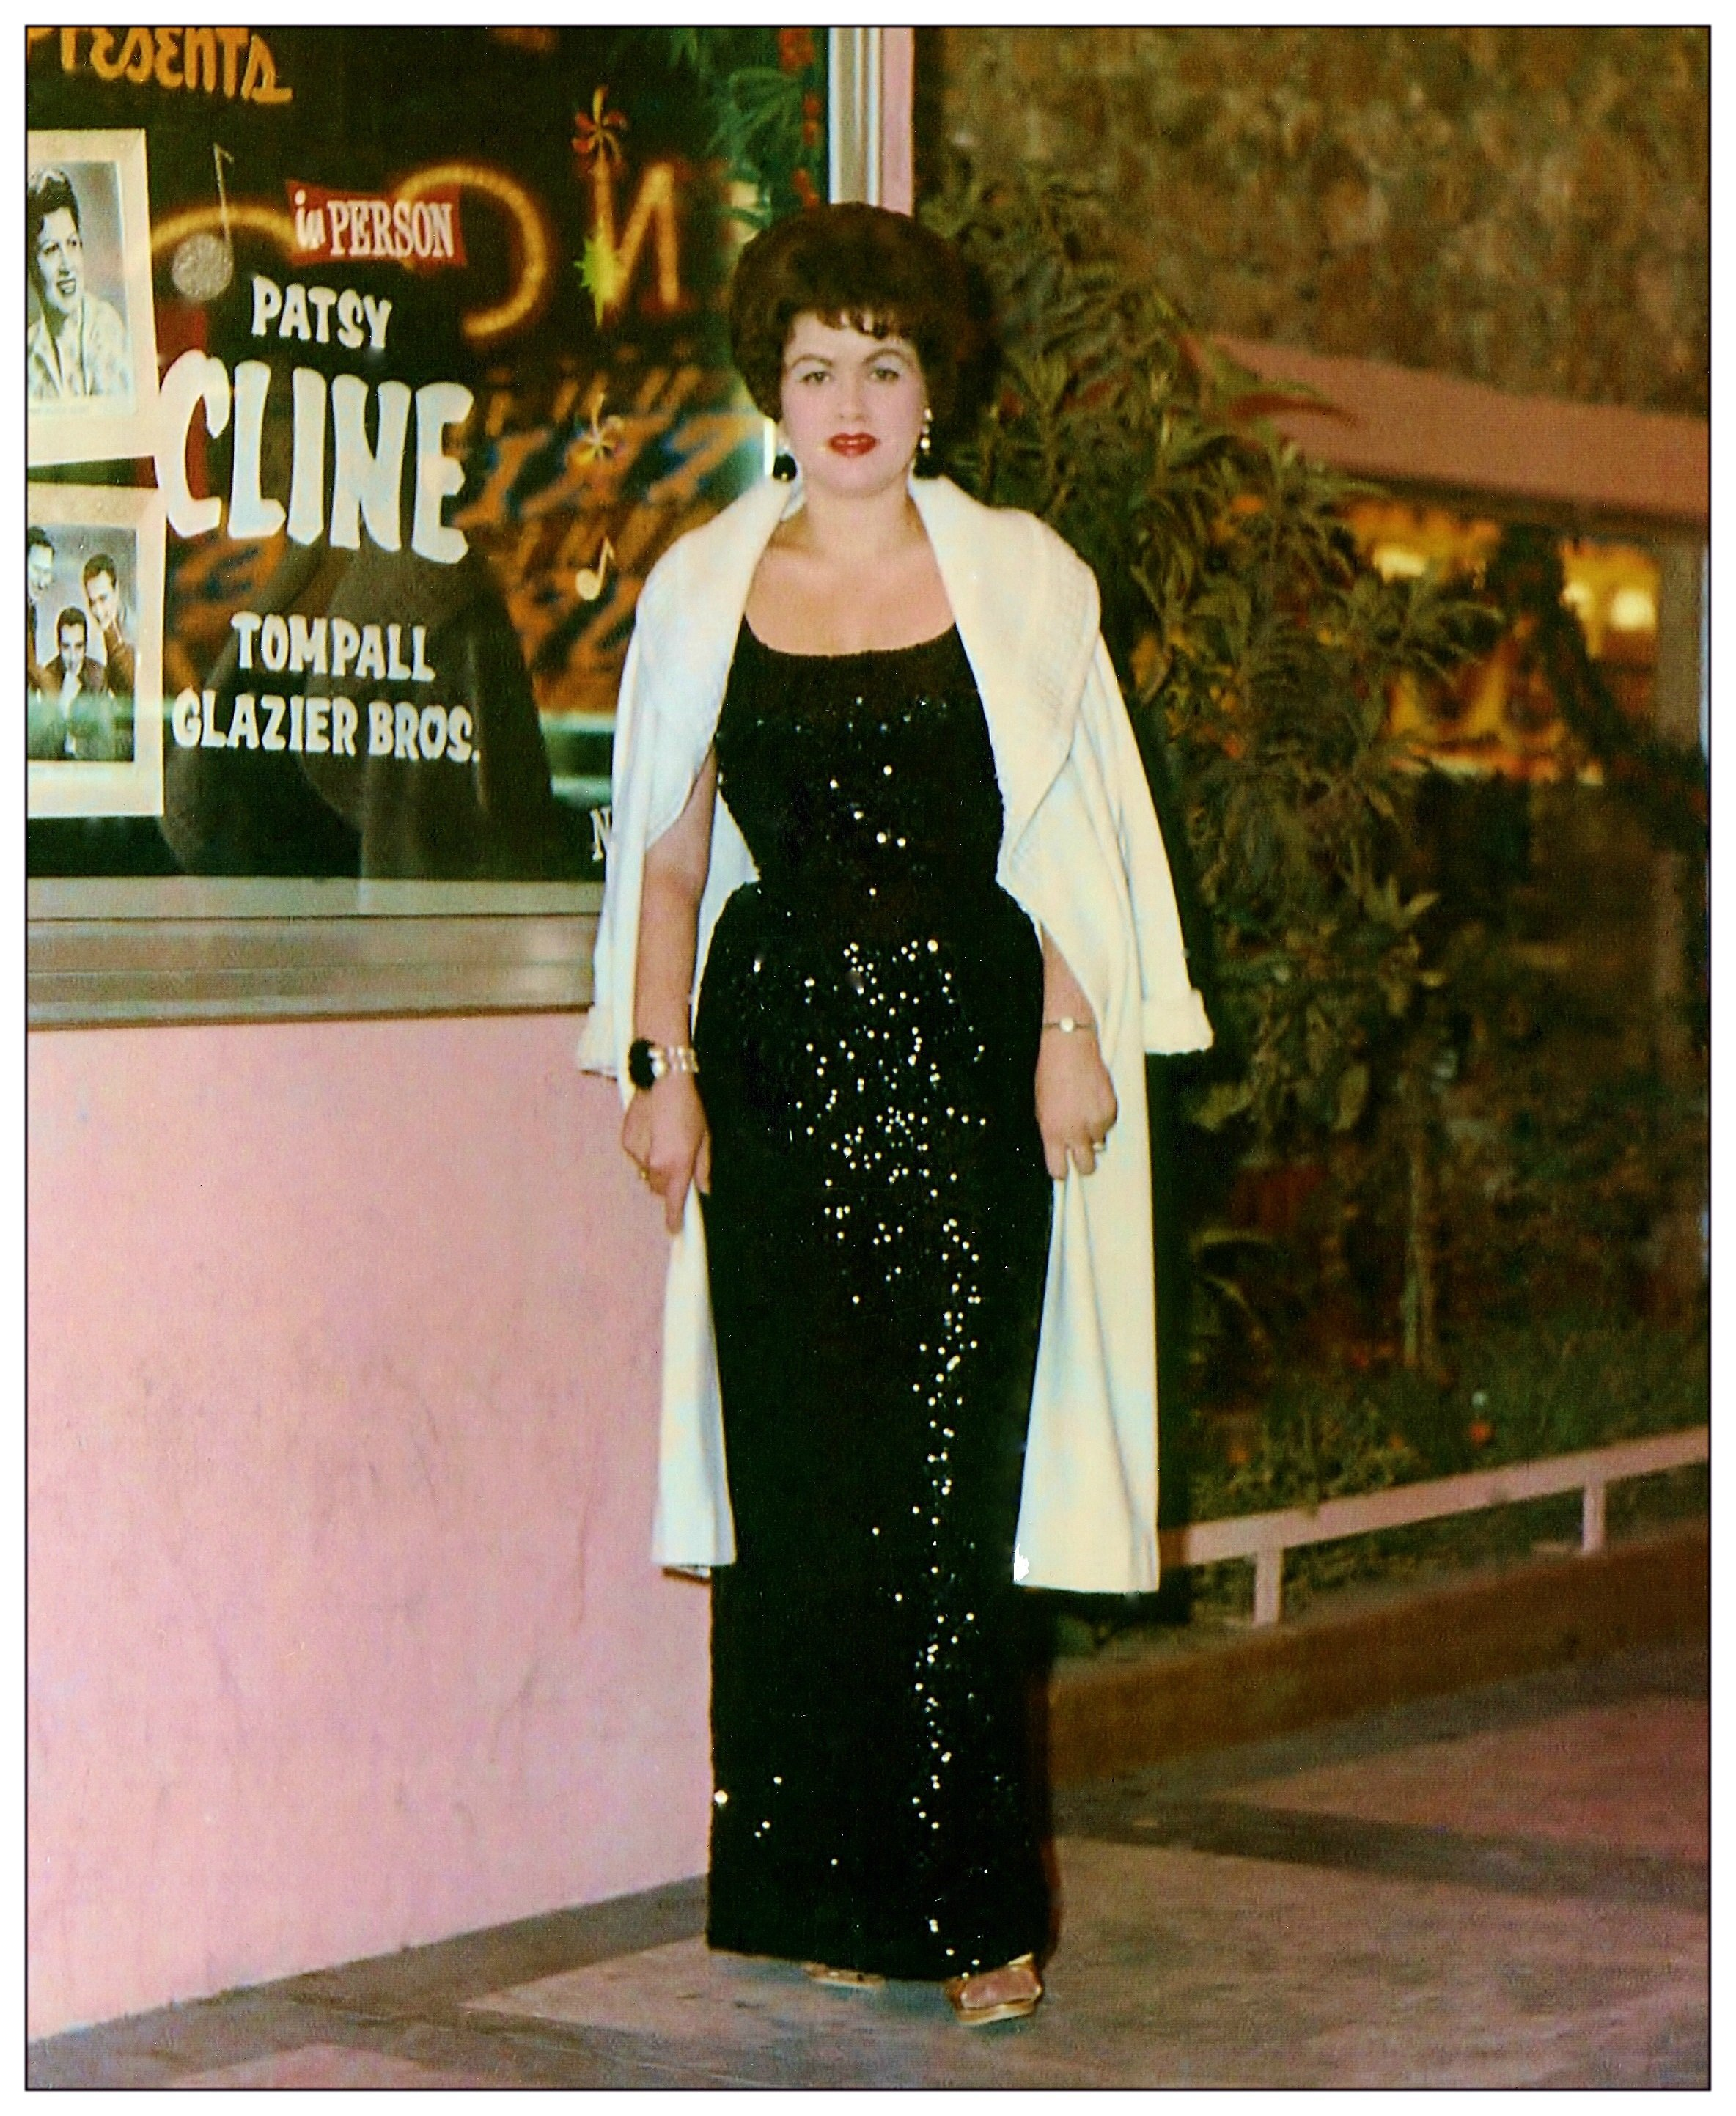 Patsy Cline at the Mint Casino in Las Vegas, Nevada. Circa 1962 | Source: Wikimedia Commons